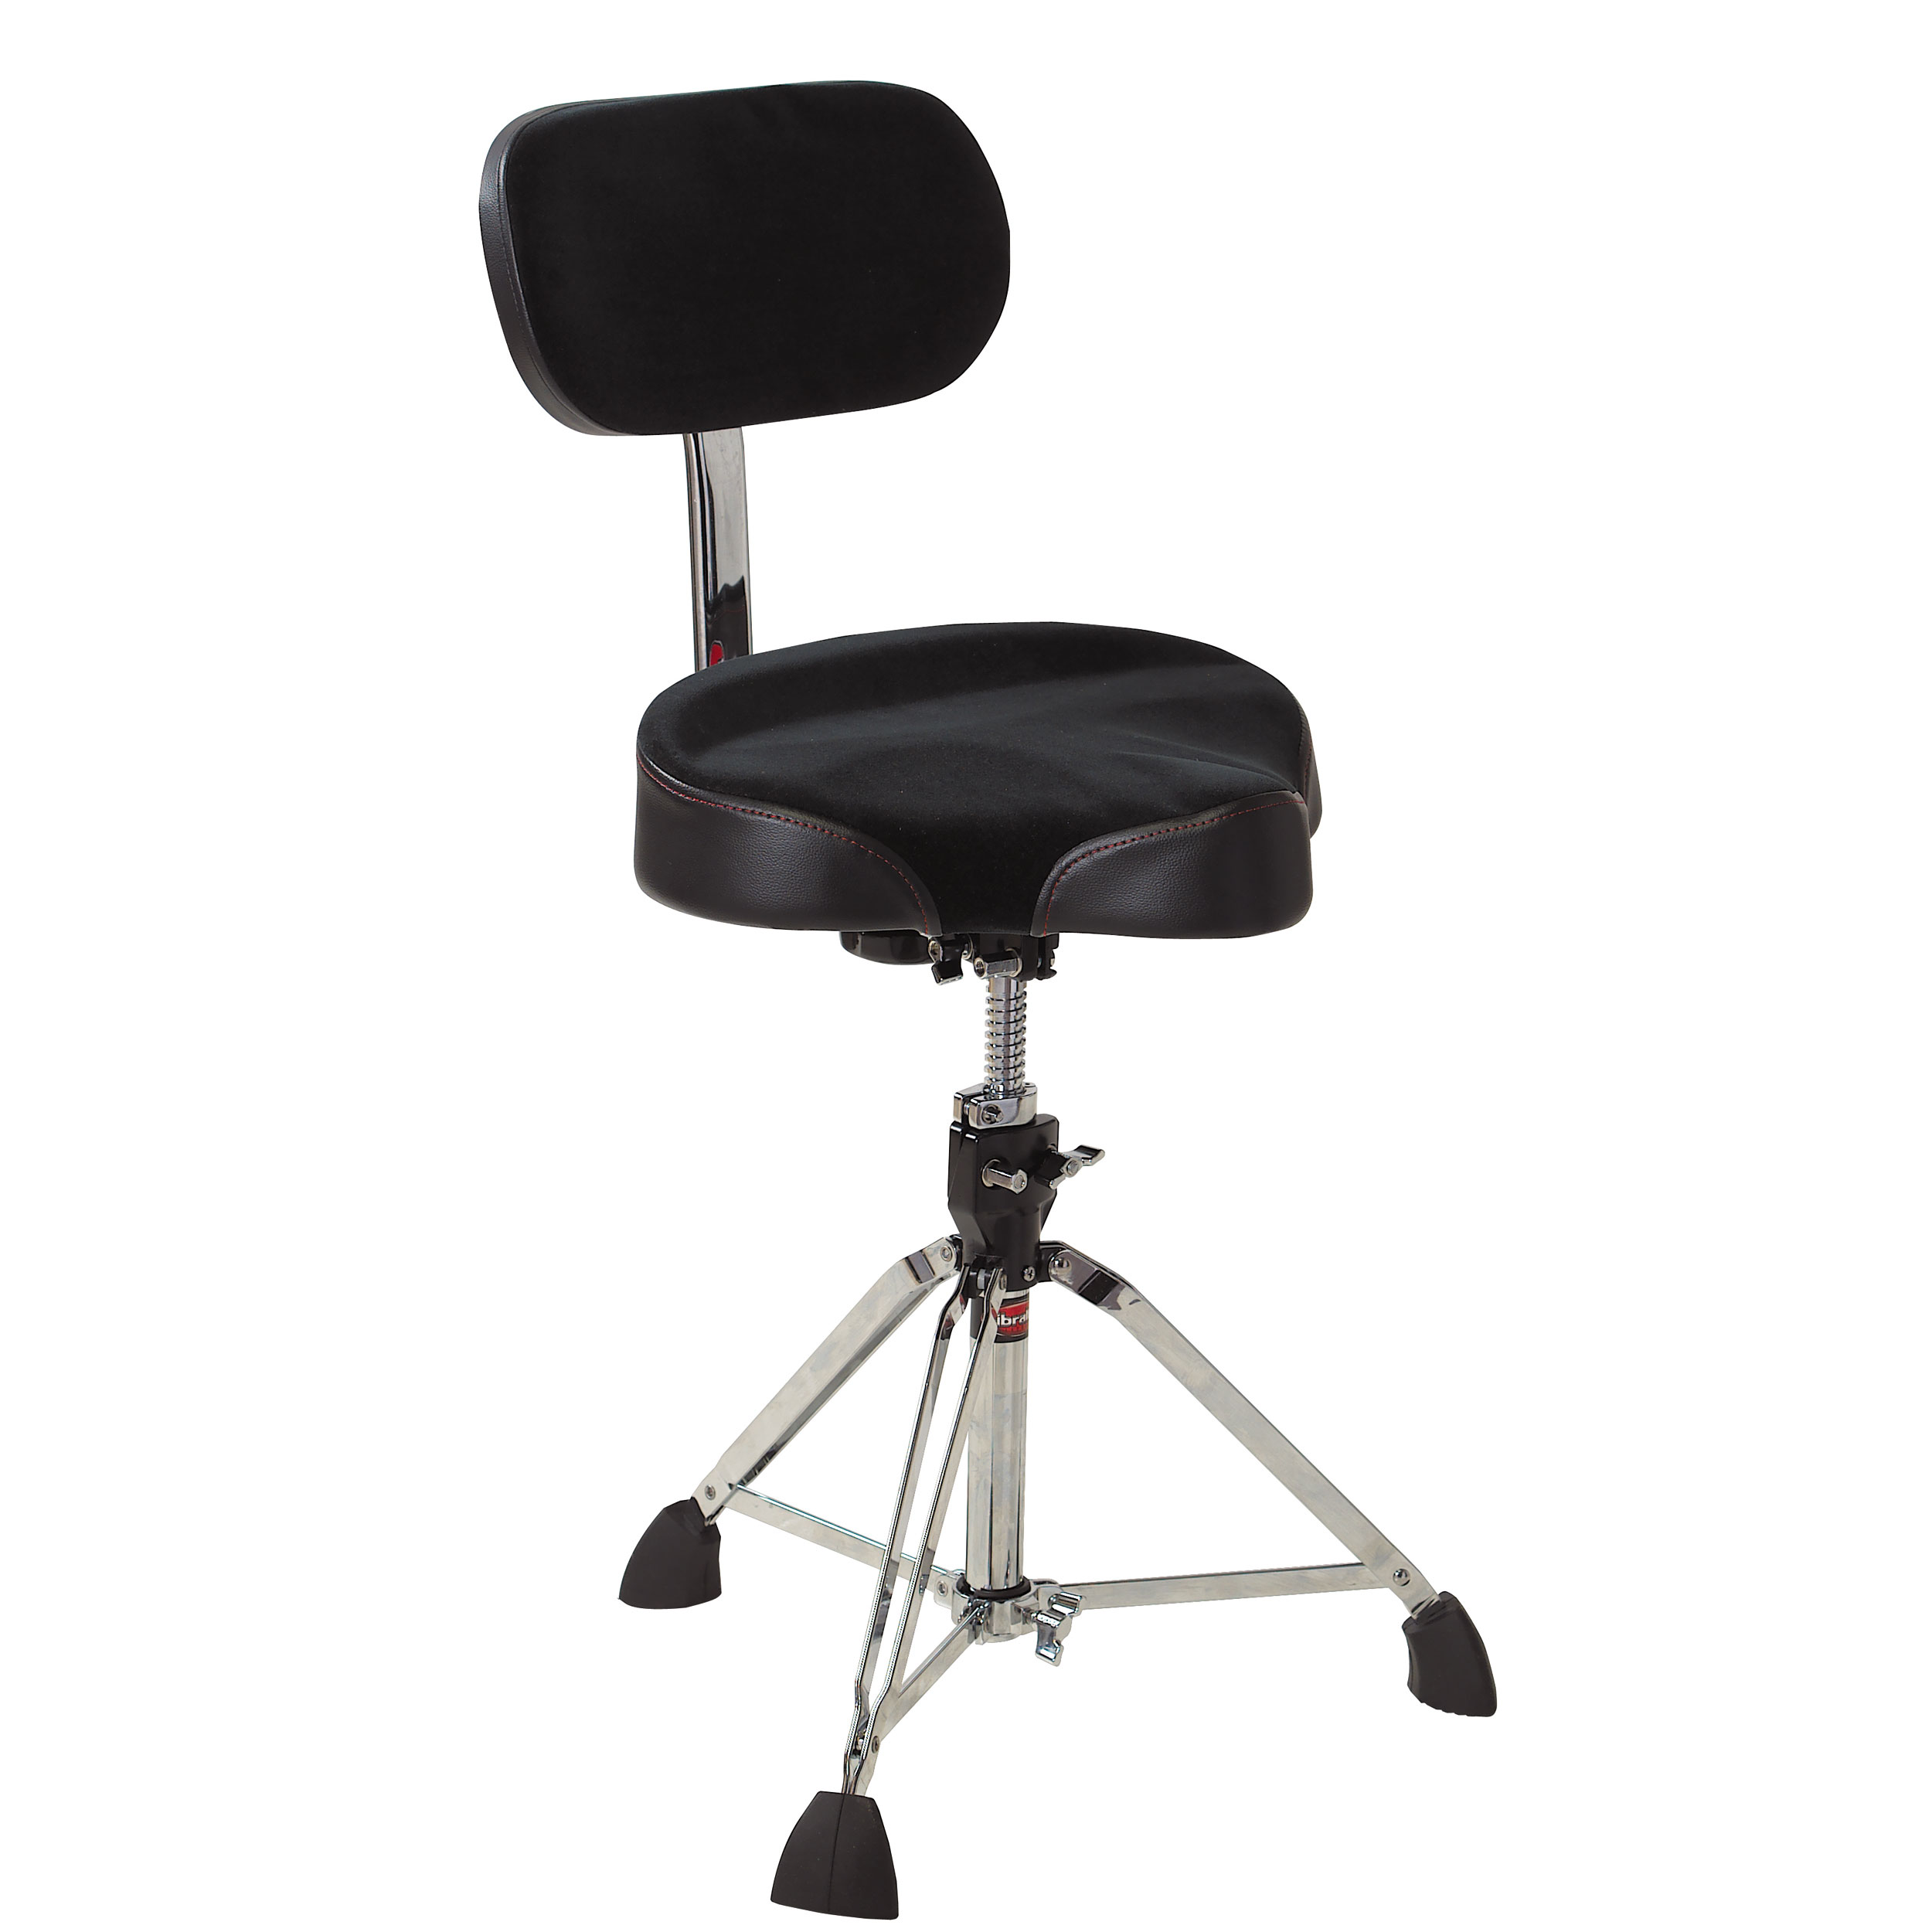 Drum Set Thrones With Manual Height Adjustment